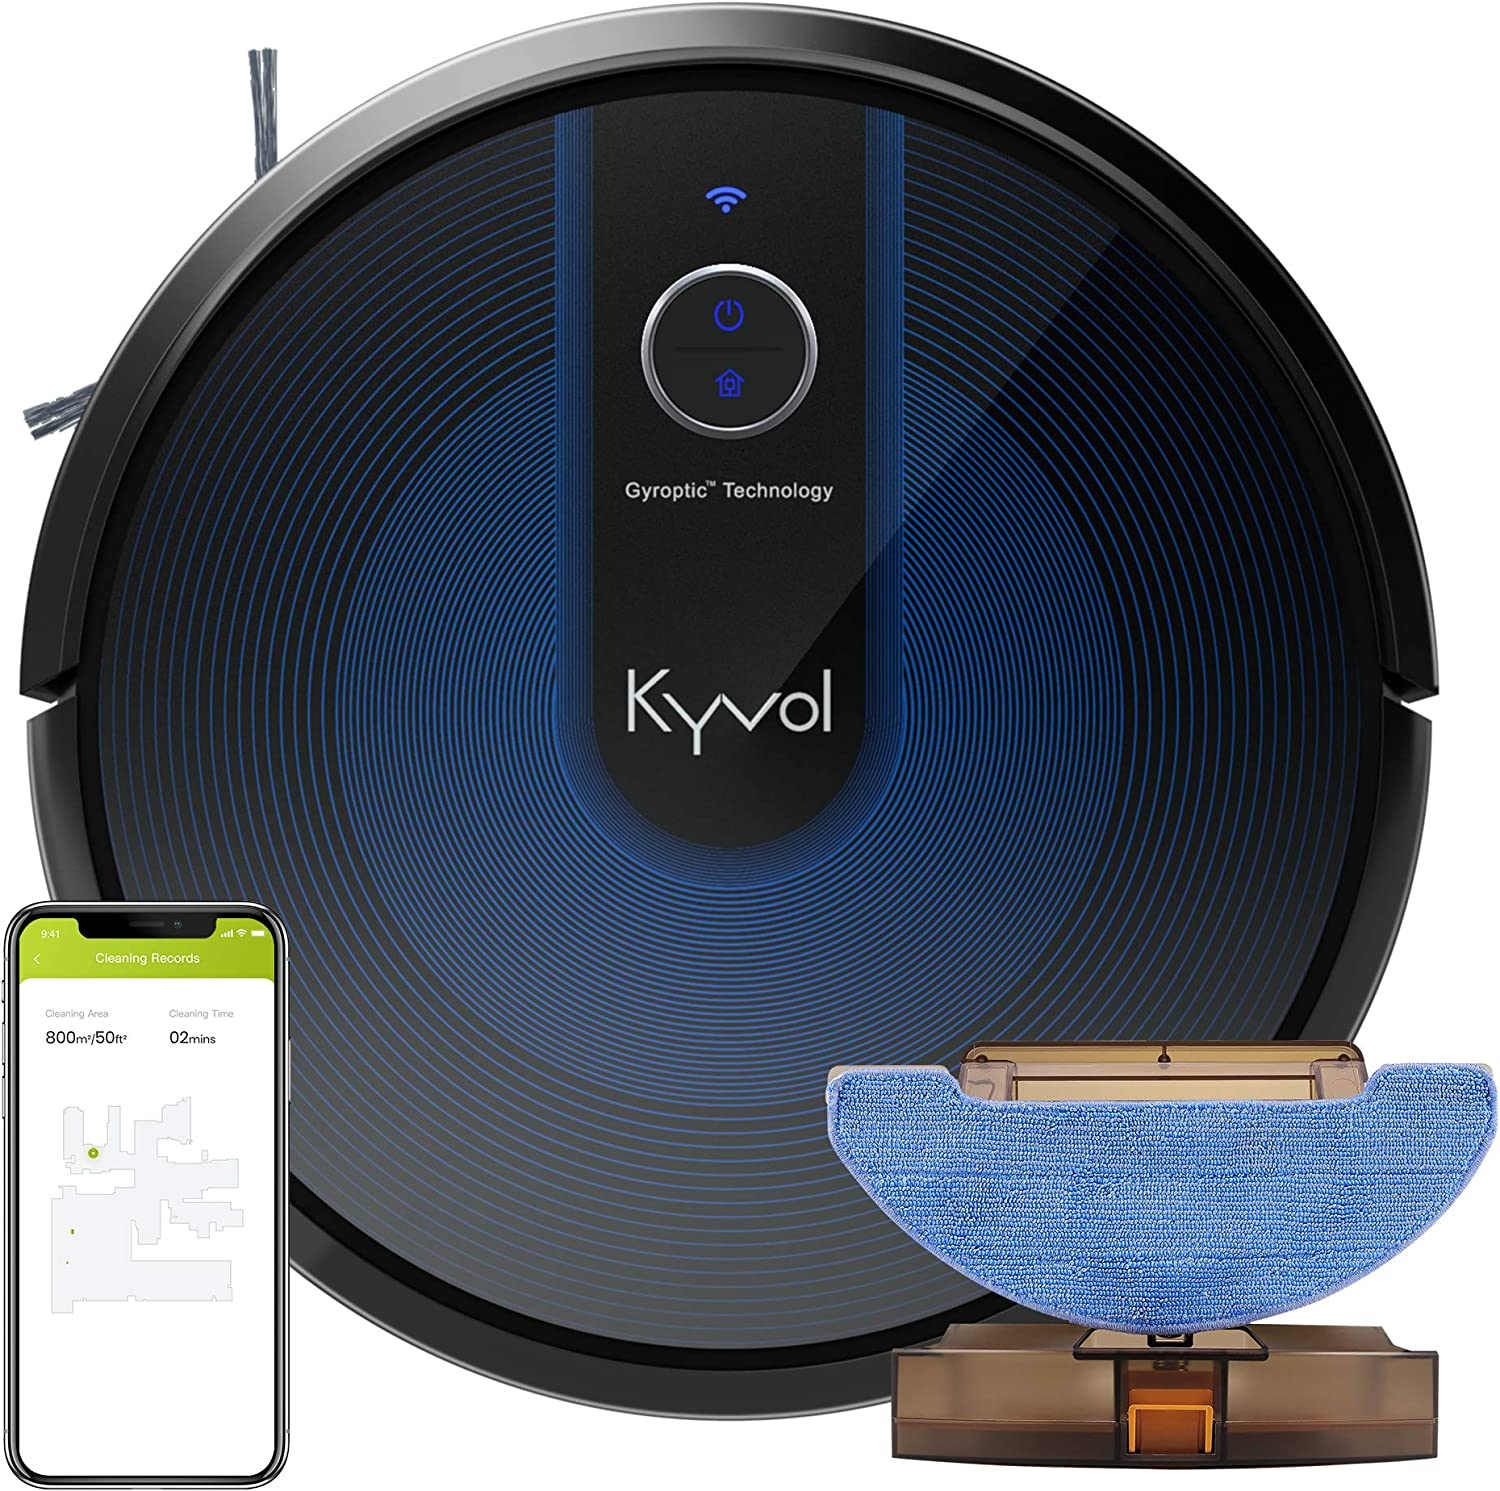 Kyvol Cybovac E31 Sweeping & Mopping Robot Vacuum Cleaner with 2200Pa Suction